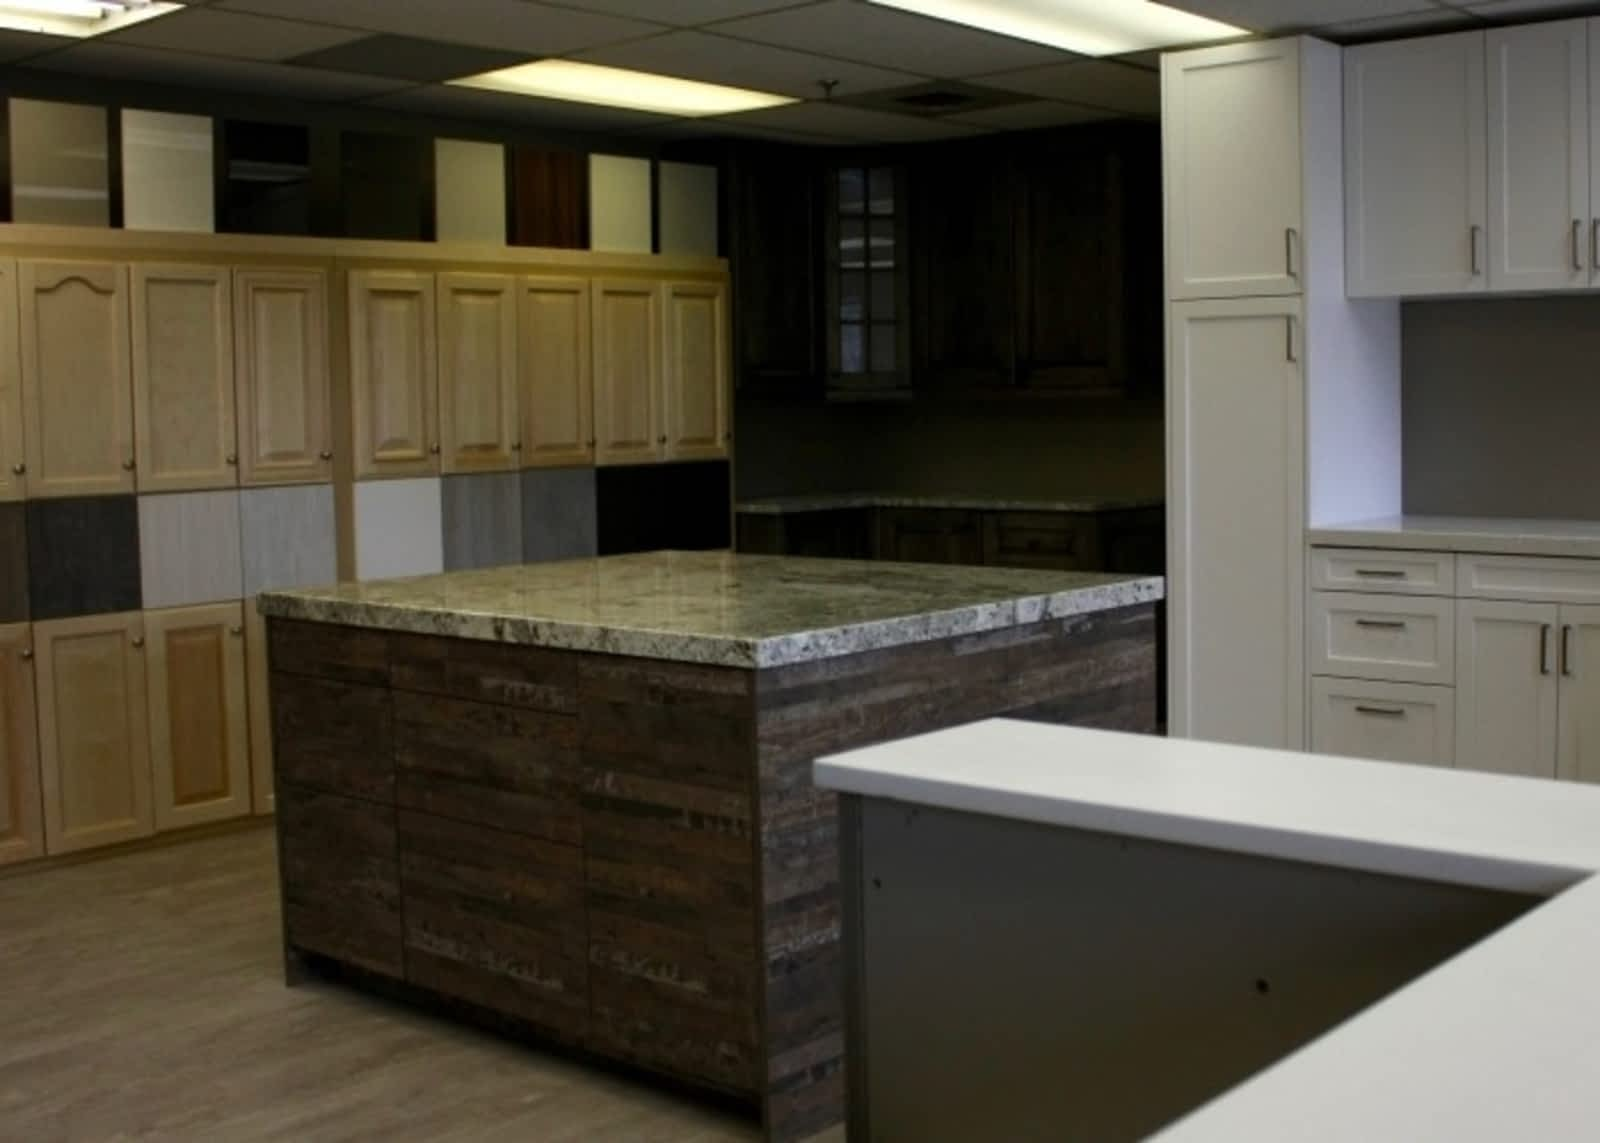 & Allstyle Cabinet Doors - 2820 Slough St Mississauga ON